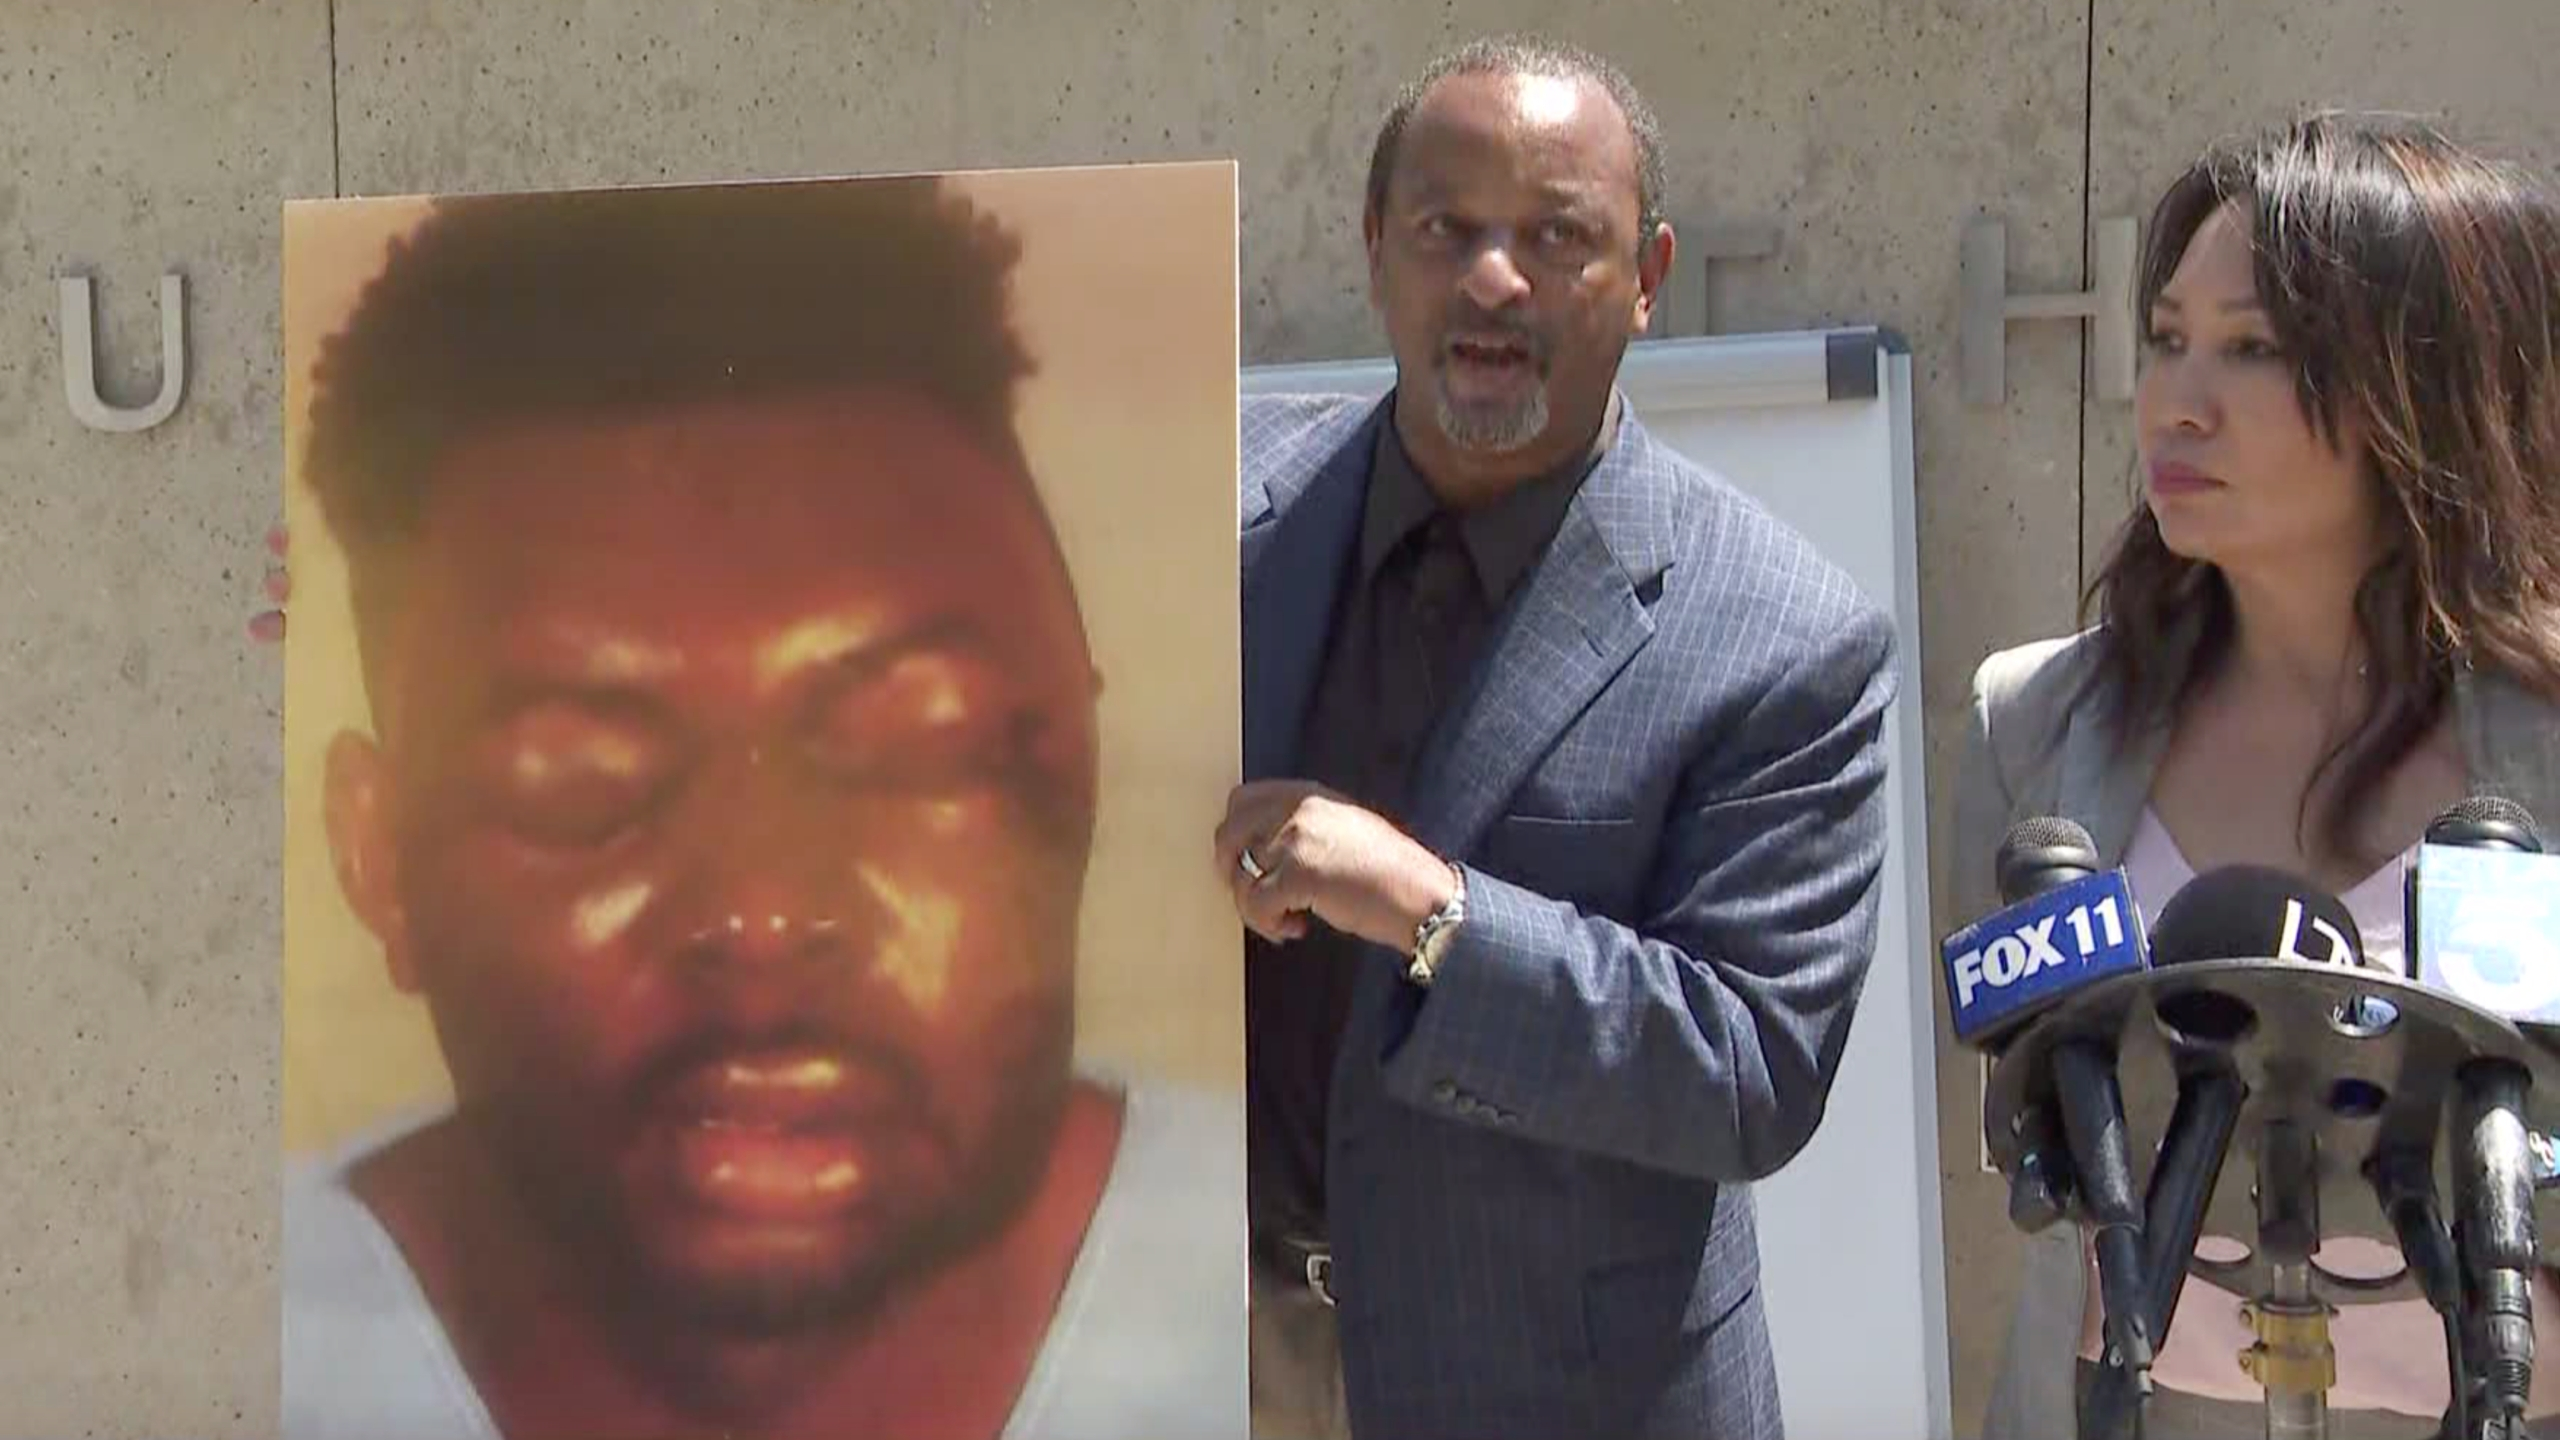 Attorneys Brian Dunn, left and Toni Jaramilla appear at a news conference in Century City on June 21, 2021, announcing a lawsuit against the Los Angeles County Sheriff's Department. Dunn holds a picture of Christopher Bailey after an alleged beating by deputies in Inglewood.